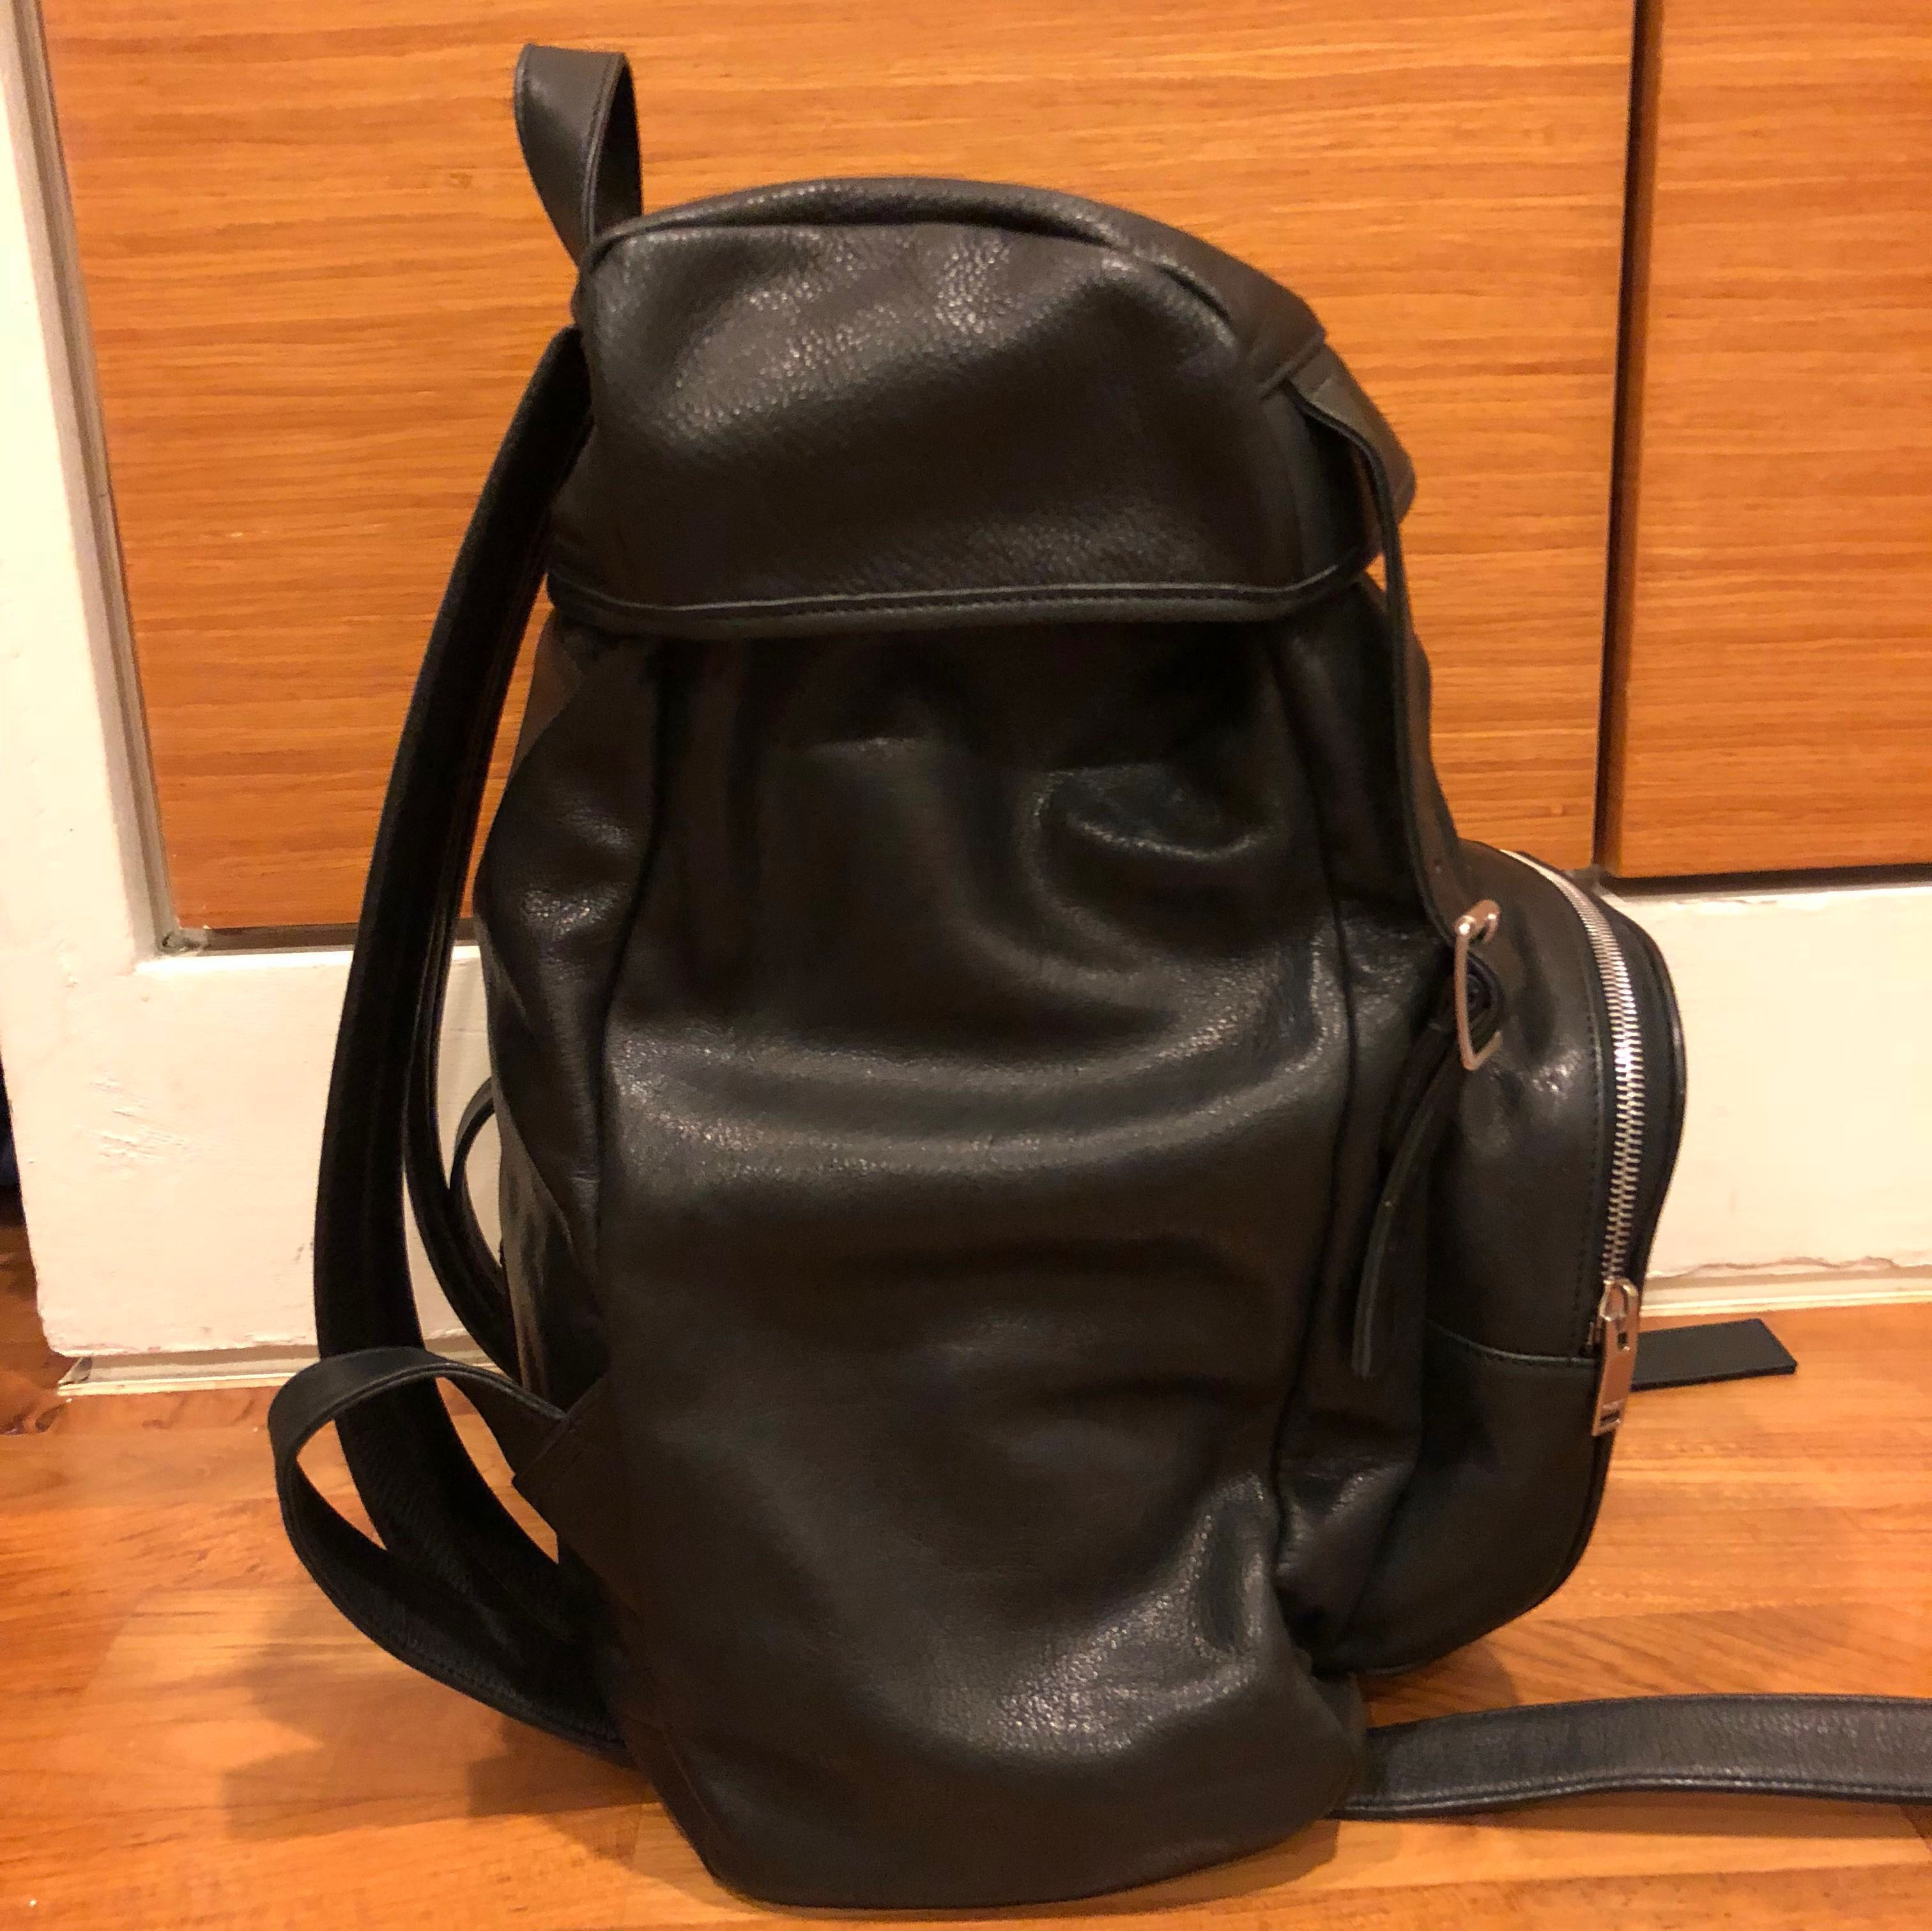 ee5934adcc9 Saint Laurent Délavé Rucksack in Black Washed Leather, Luxury, Bags ...